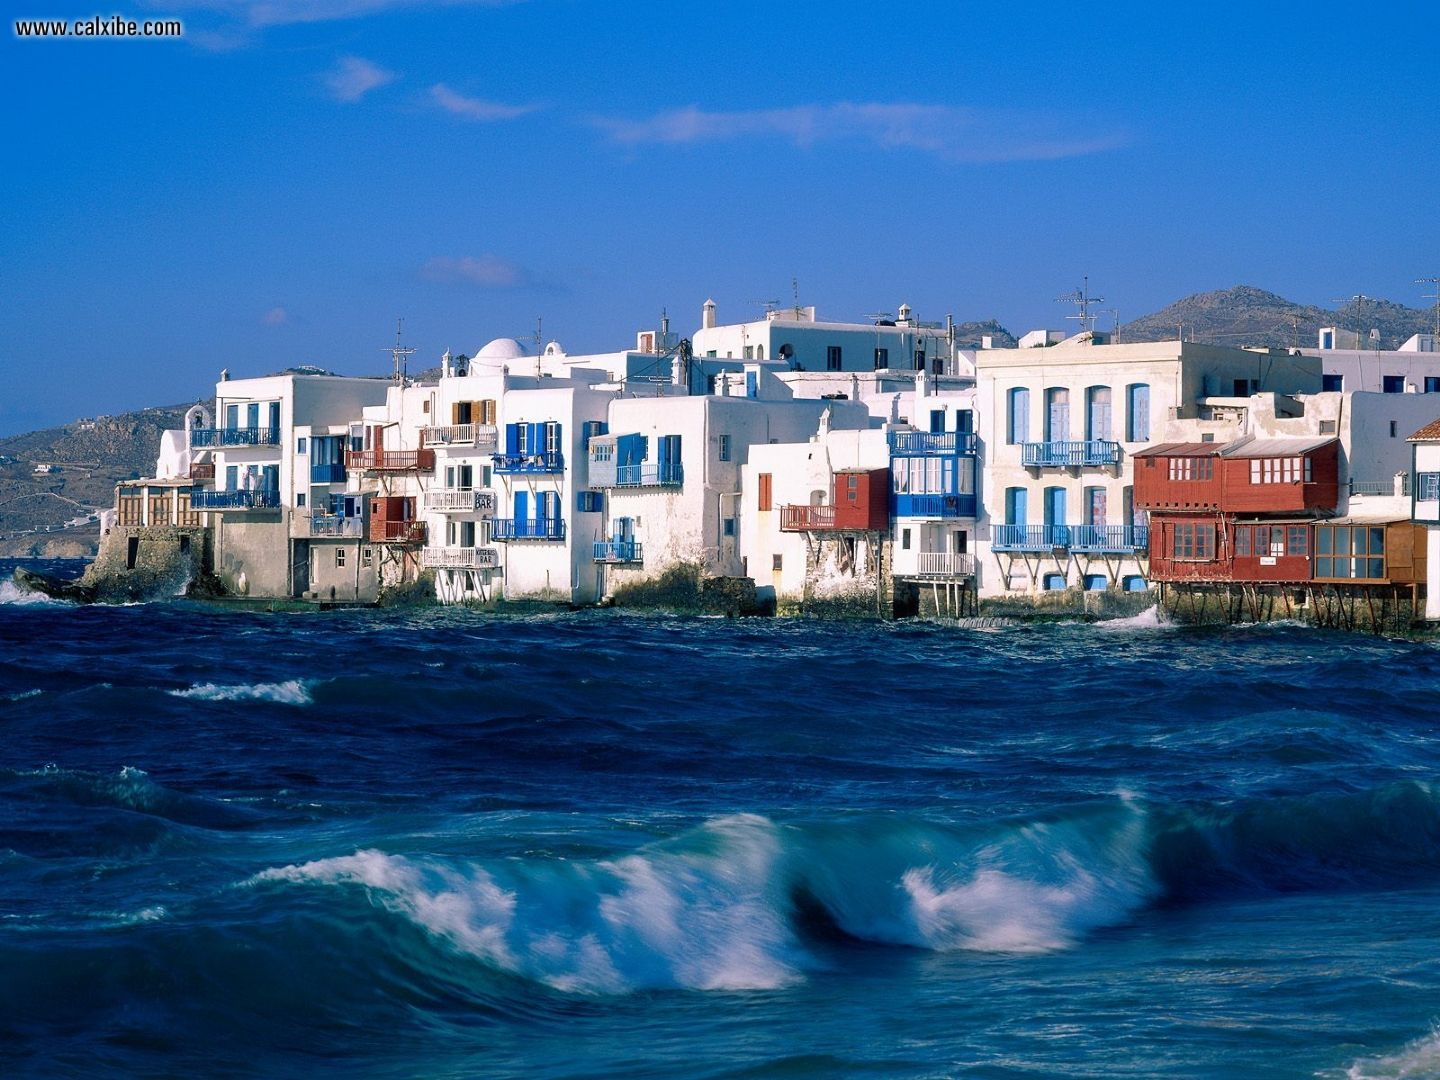 City Mykonos Cyclades Islands Greece desktop wallpaper nr 992 1440x1080